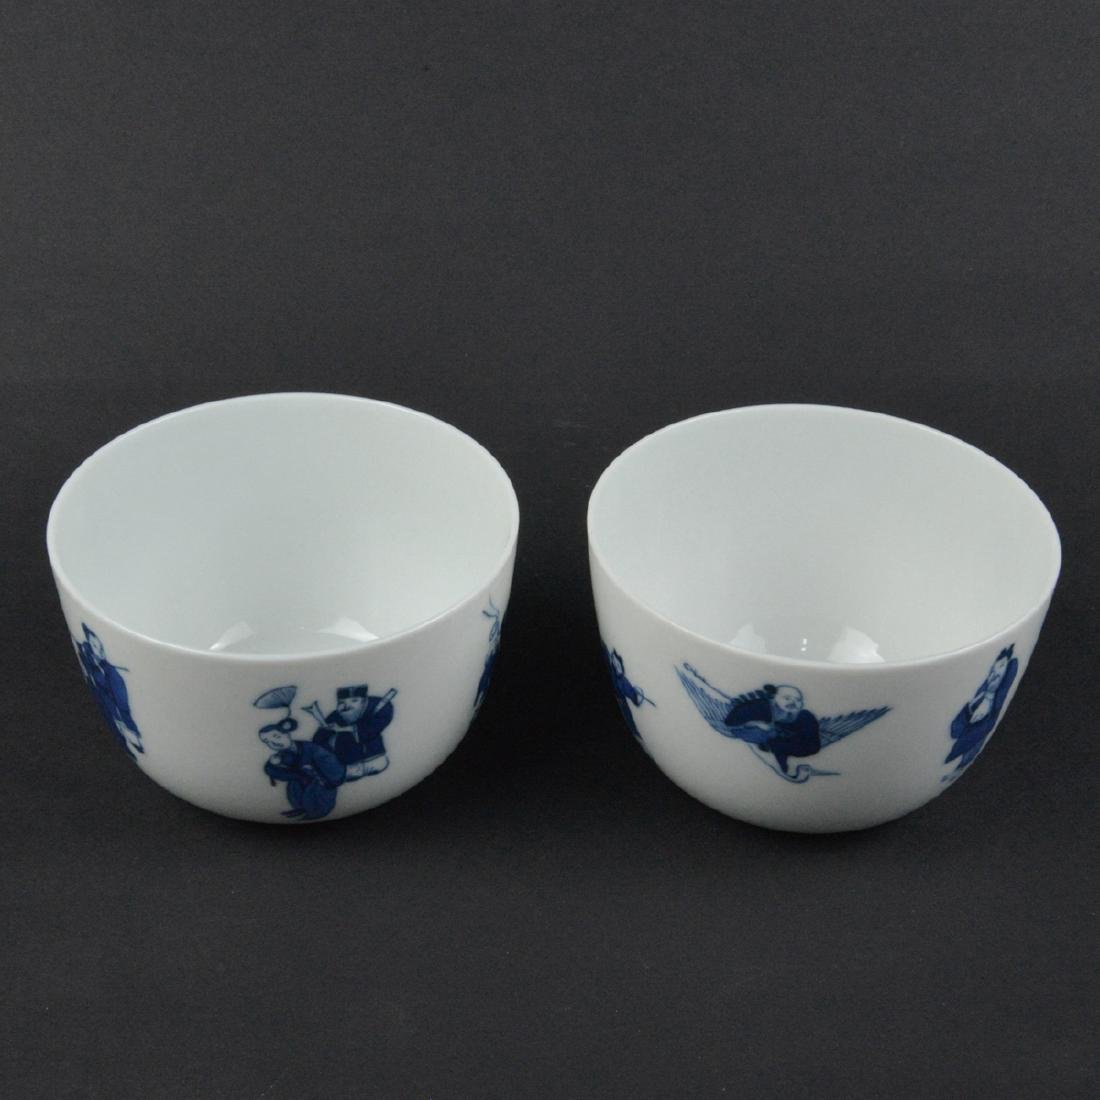 CHINESE BLUE AND WHITE CUPS, PAIR - 3